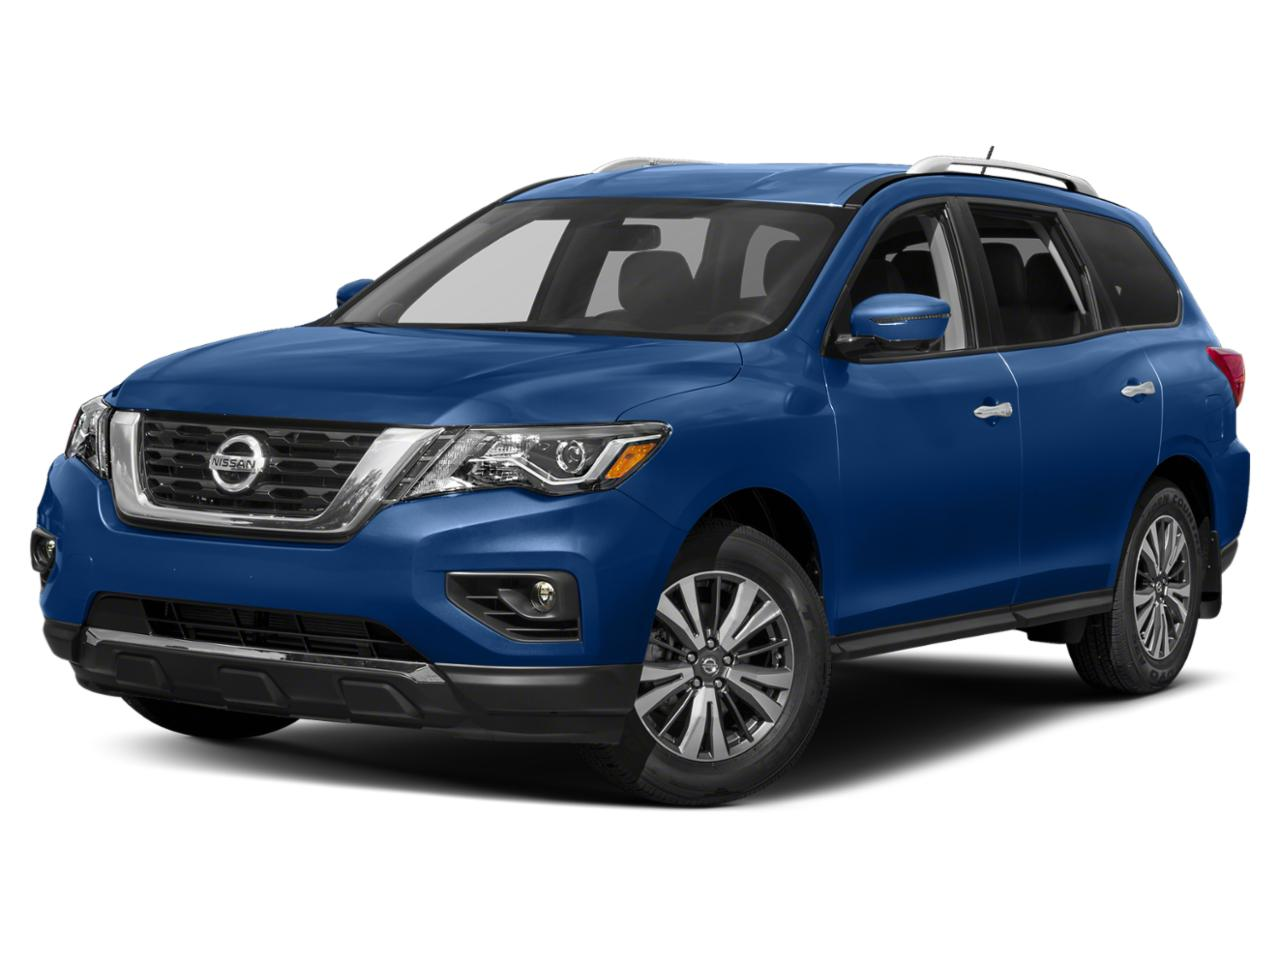 2020 Nissan Pathfinder Vehicle Photo in Streetsboro, OH 44241